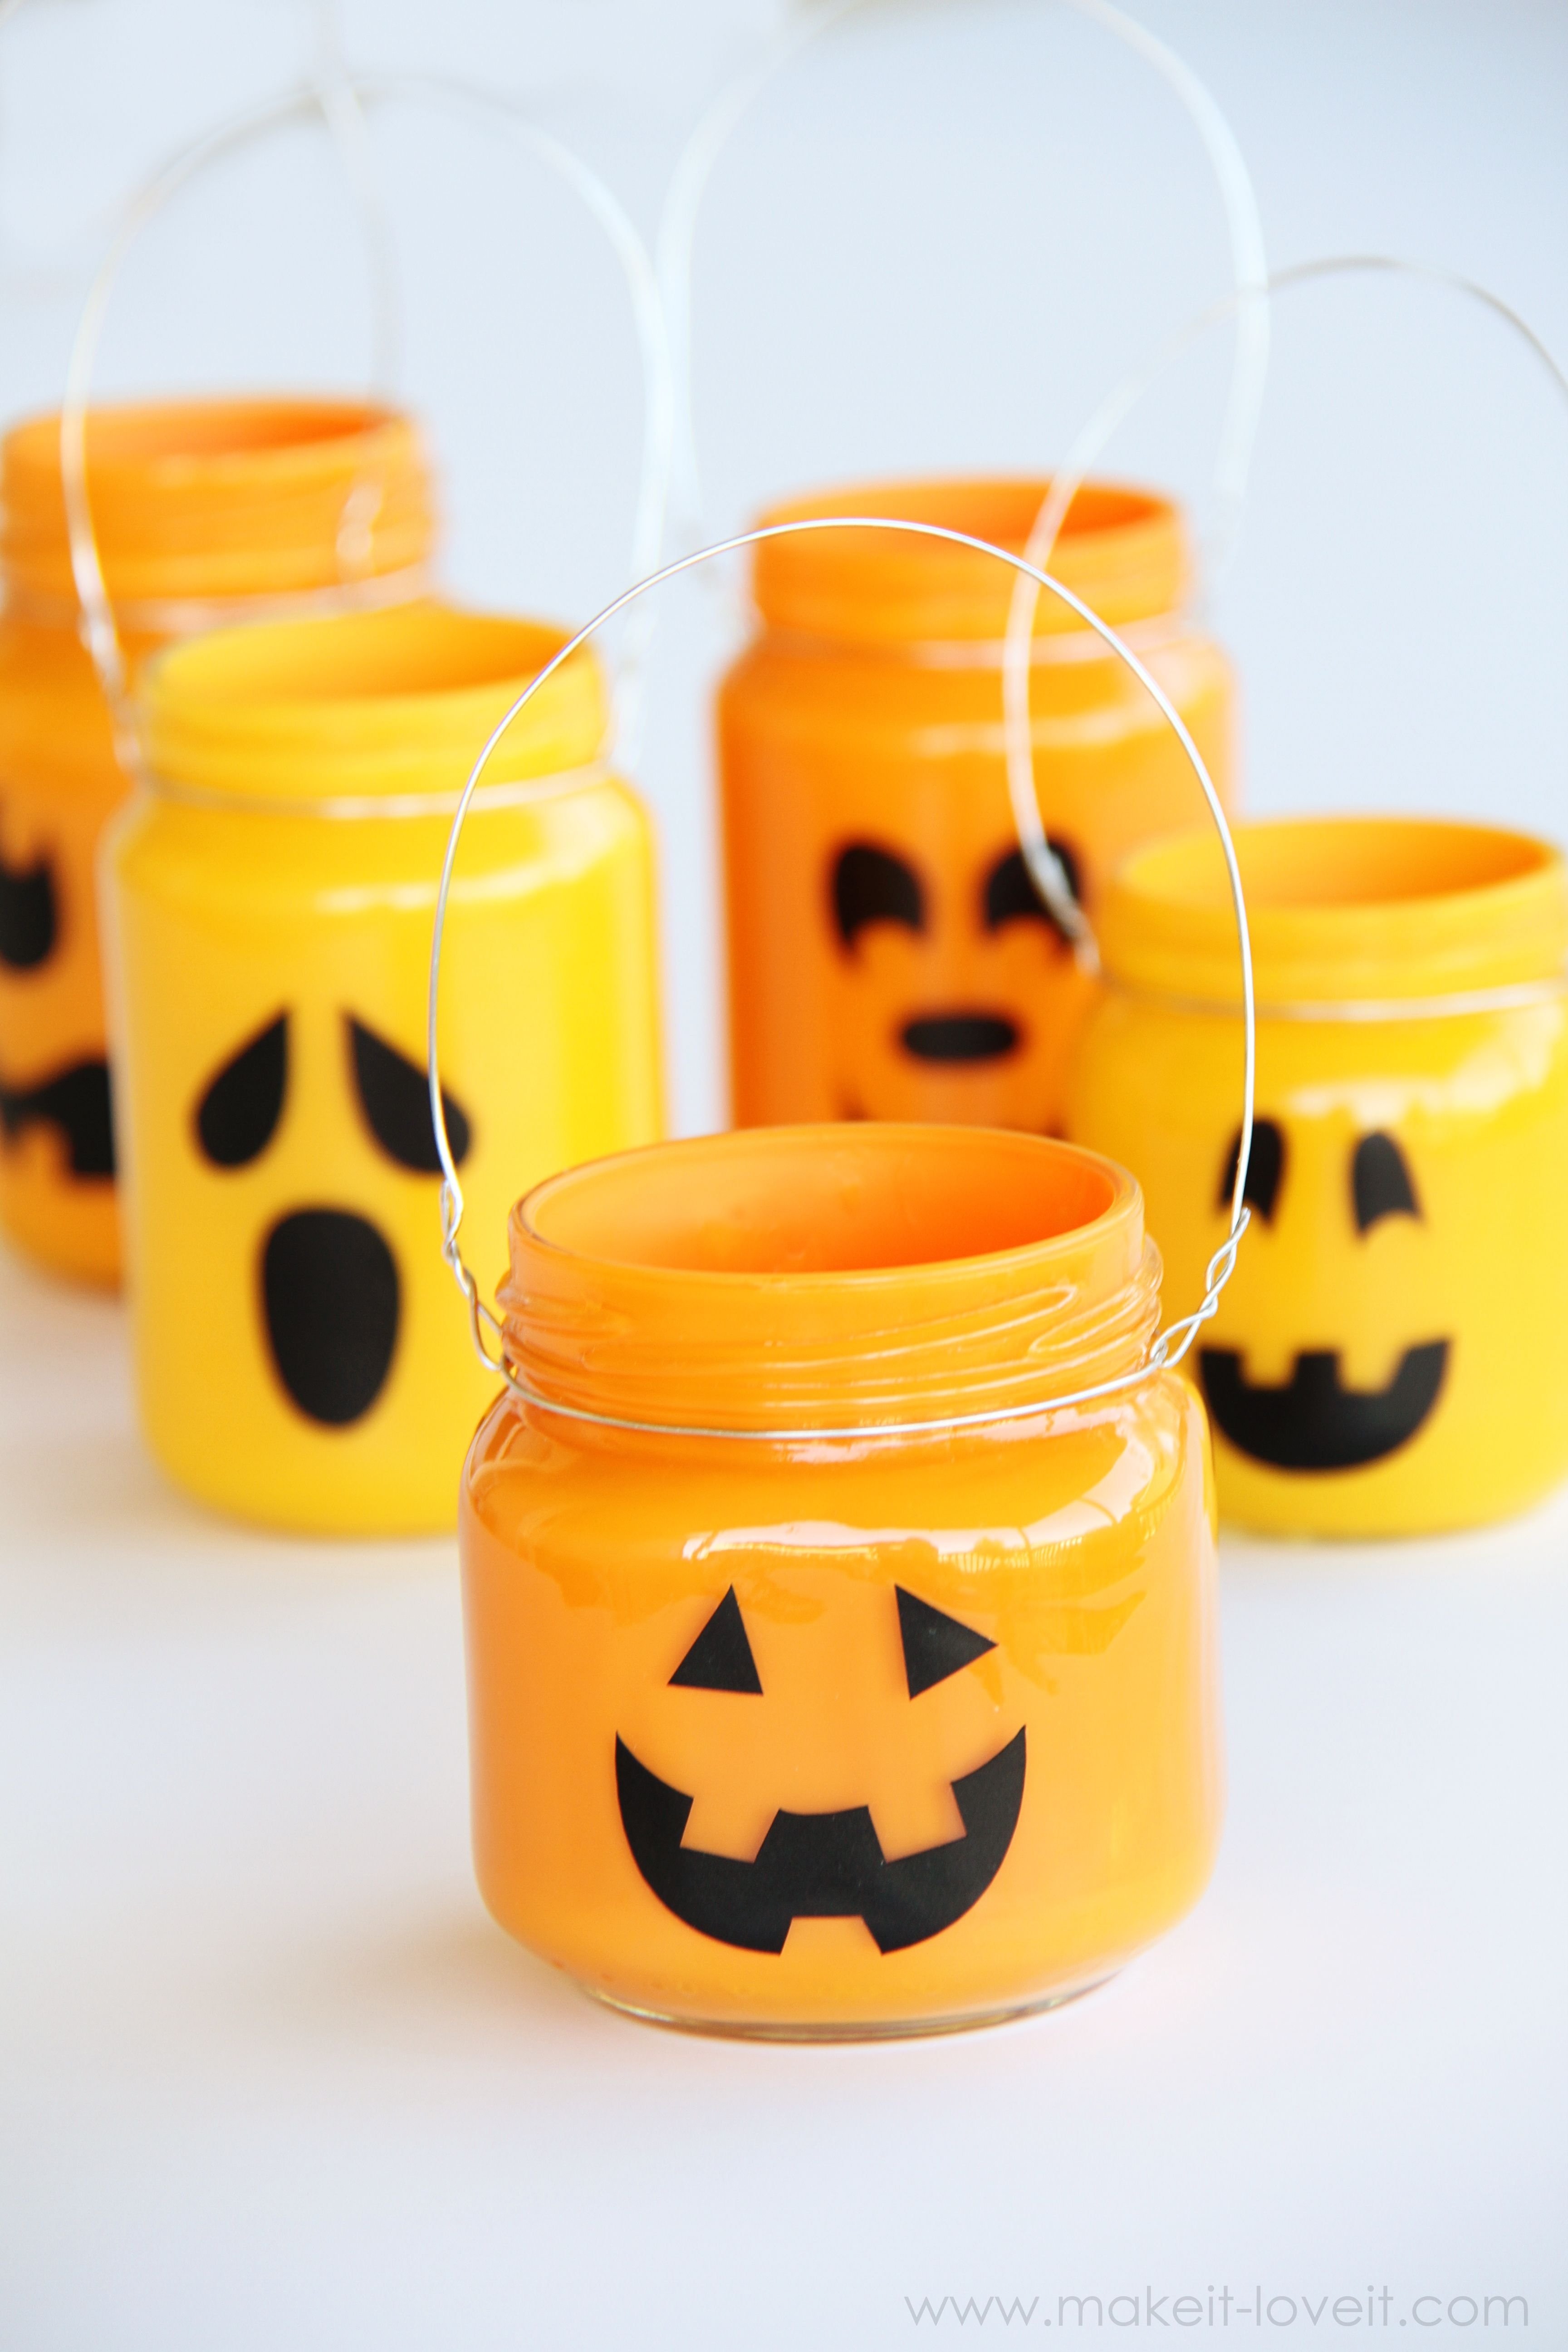 pumpkin jars: add treats, candles, or nothing at all | pinterest